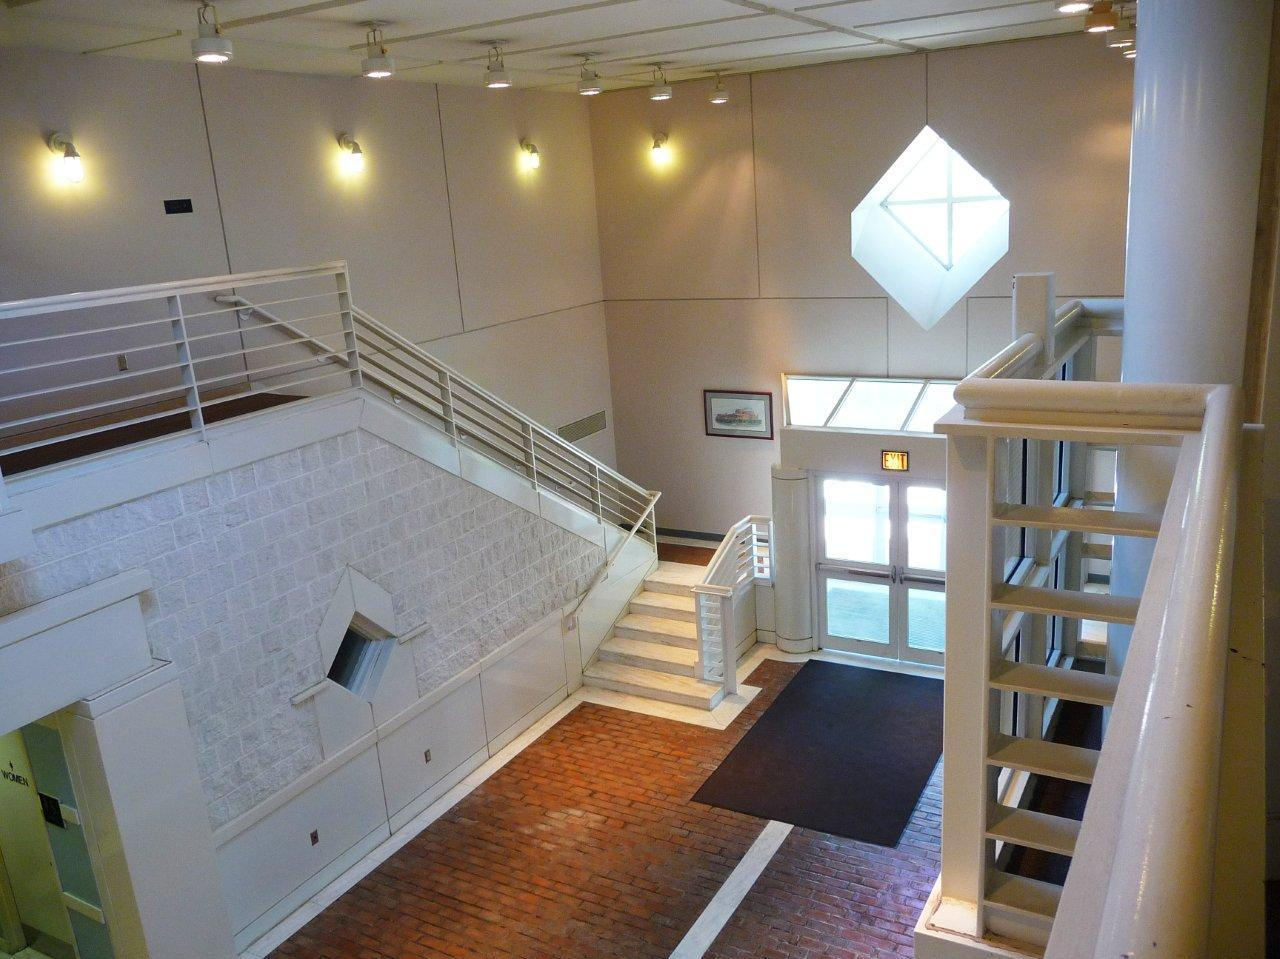 Interior of the Bartholomew County Jail